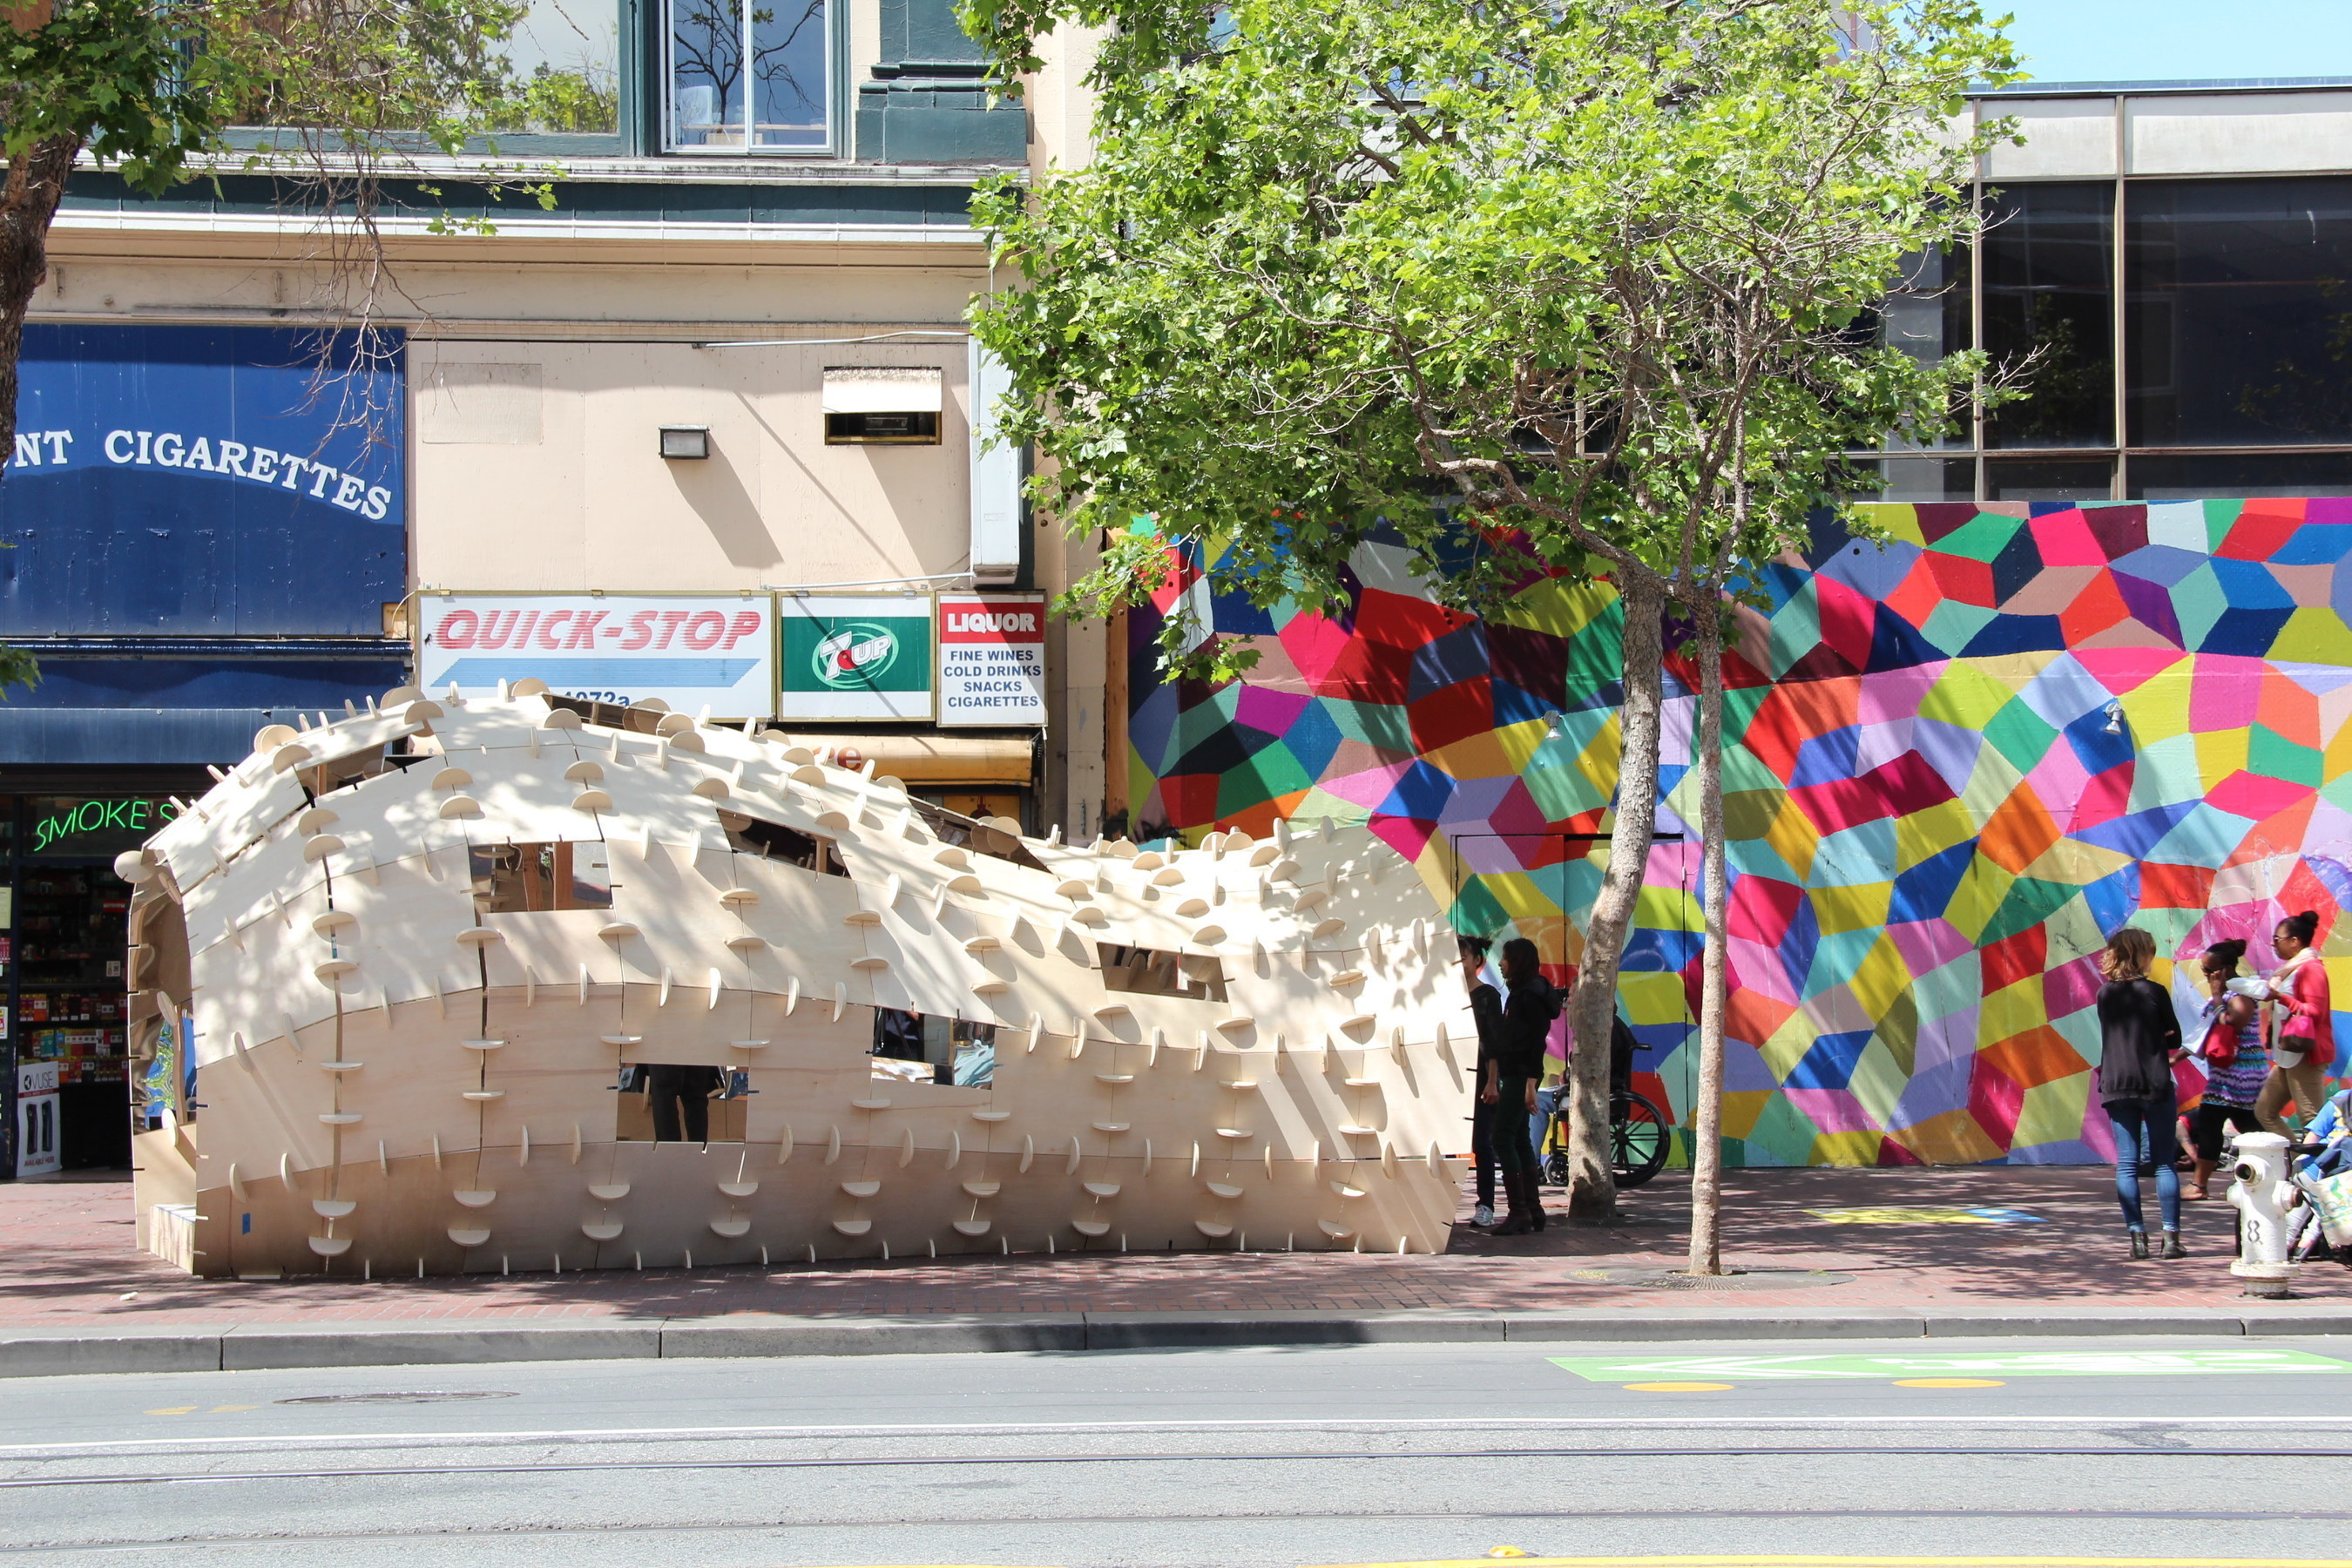 YBCA and San Francisco Planning Department Announce 2016 Open Call for Market Street Prototyping Festival